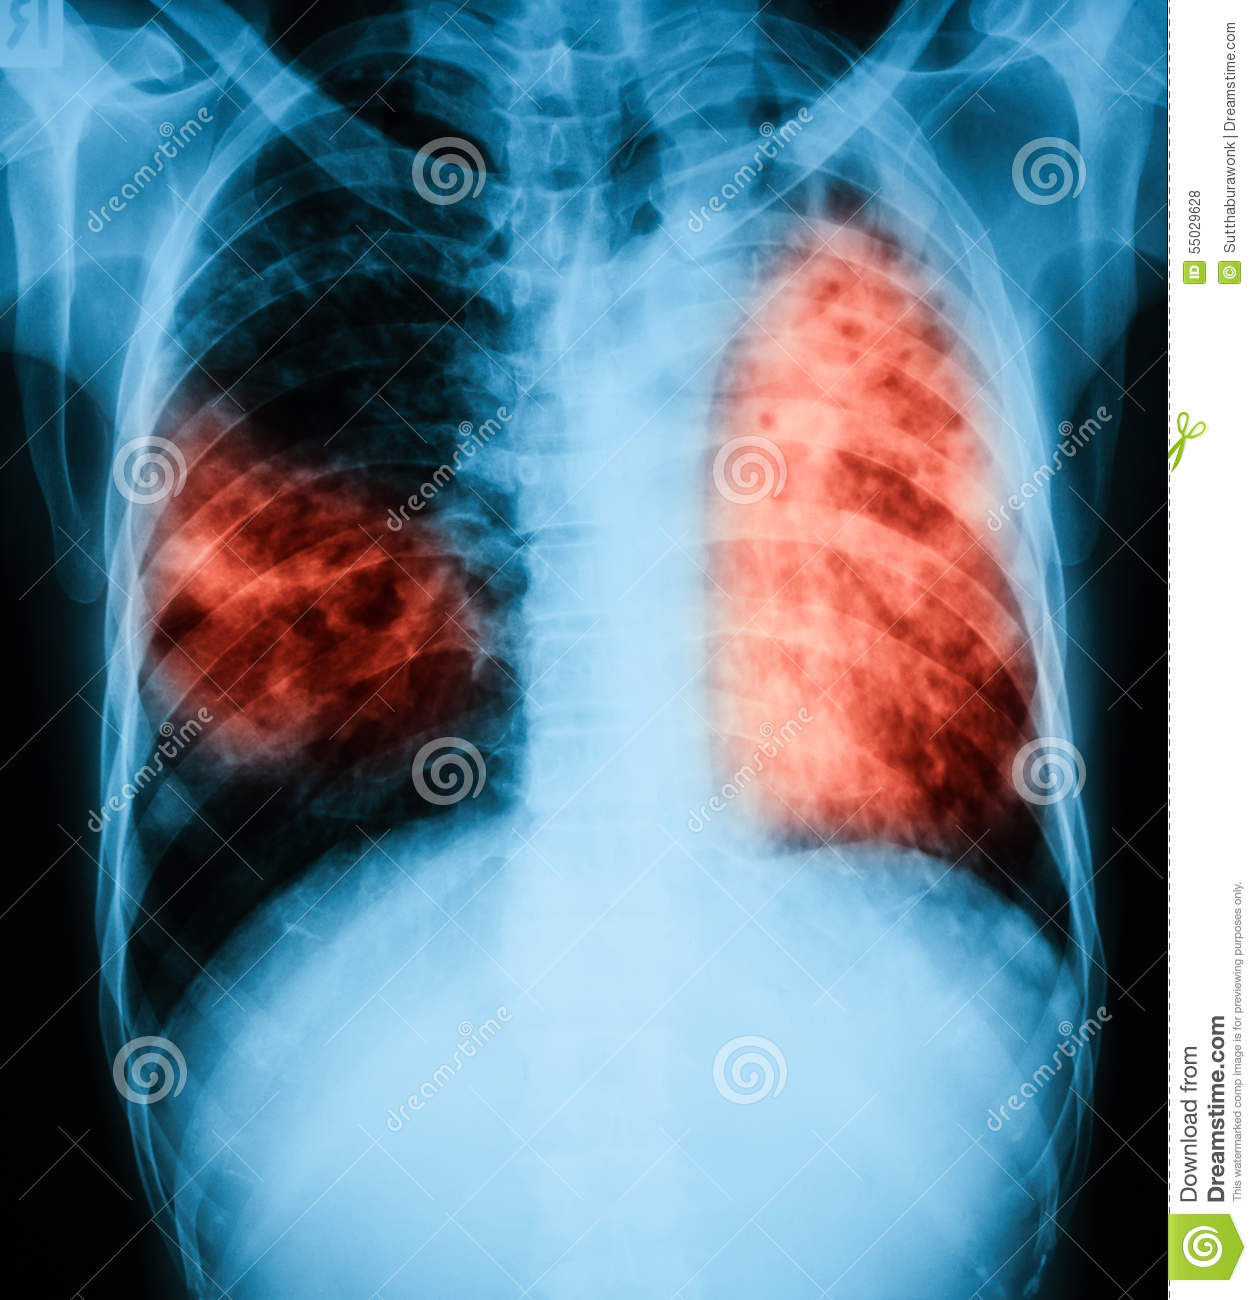 Pulmonary Tuberculosis Tb Chest X Ray Show Alveolar Infiltration Both Lung Due To Mycobacterium Tuberculosis Infectionp